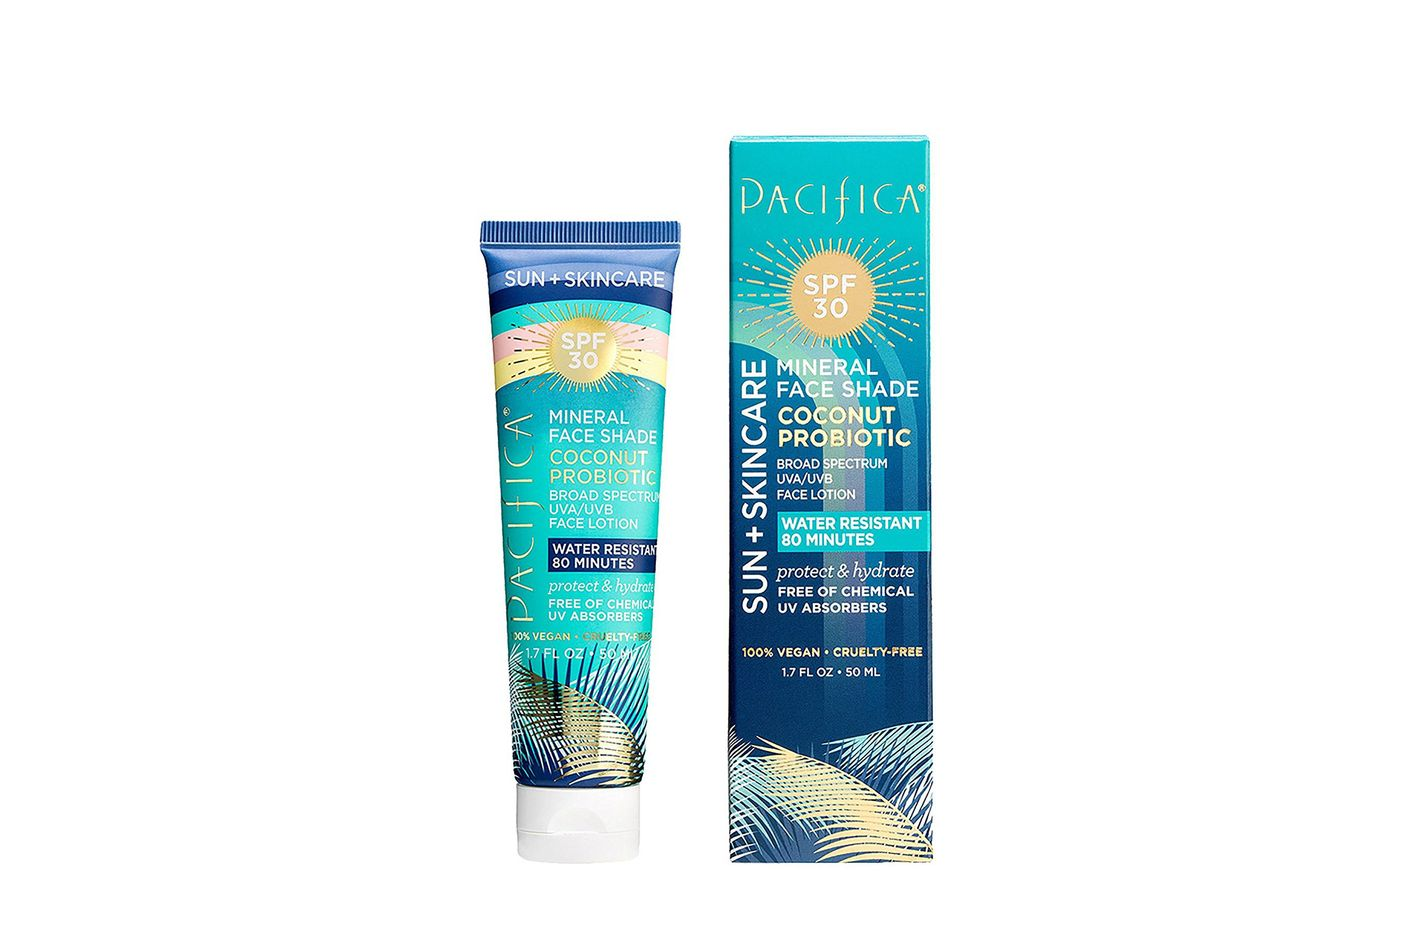 Pacifica SPF 30 Mineral Face Shade